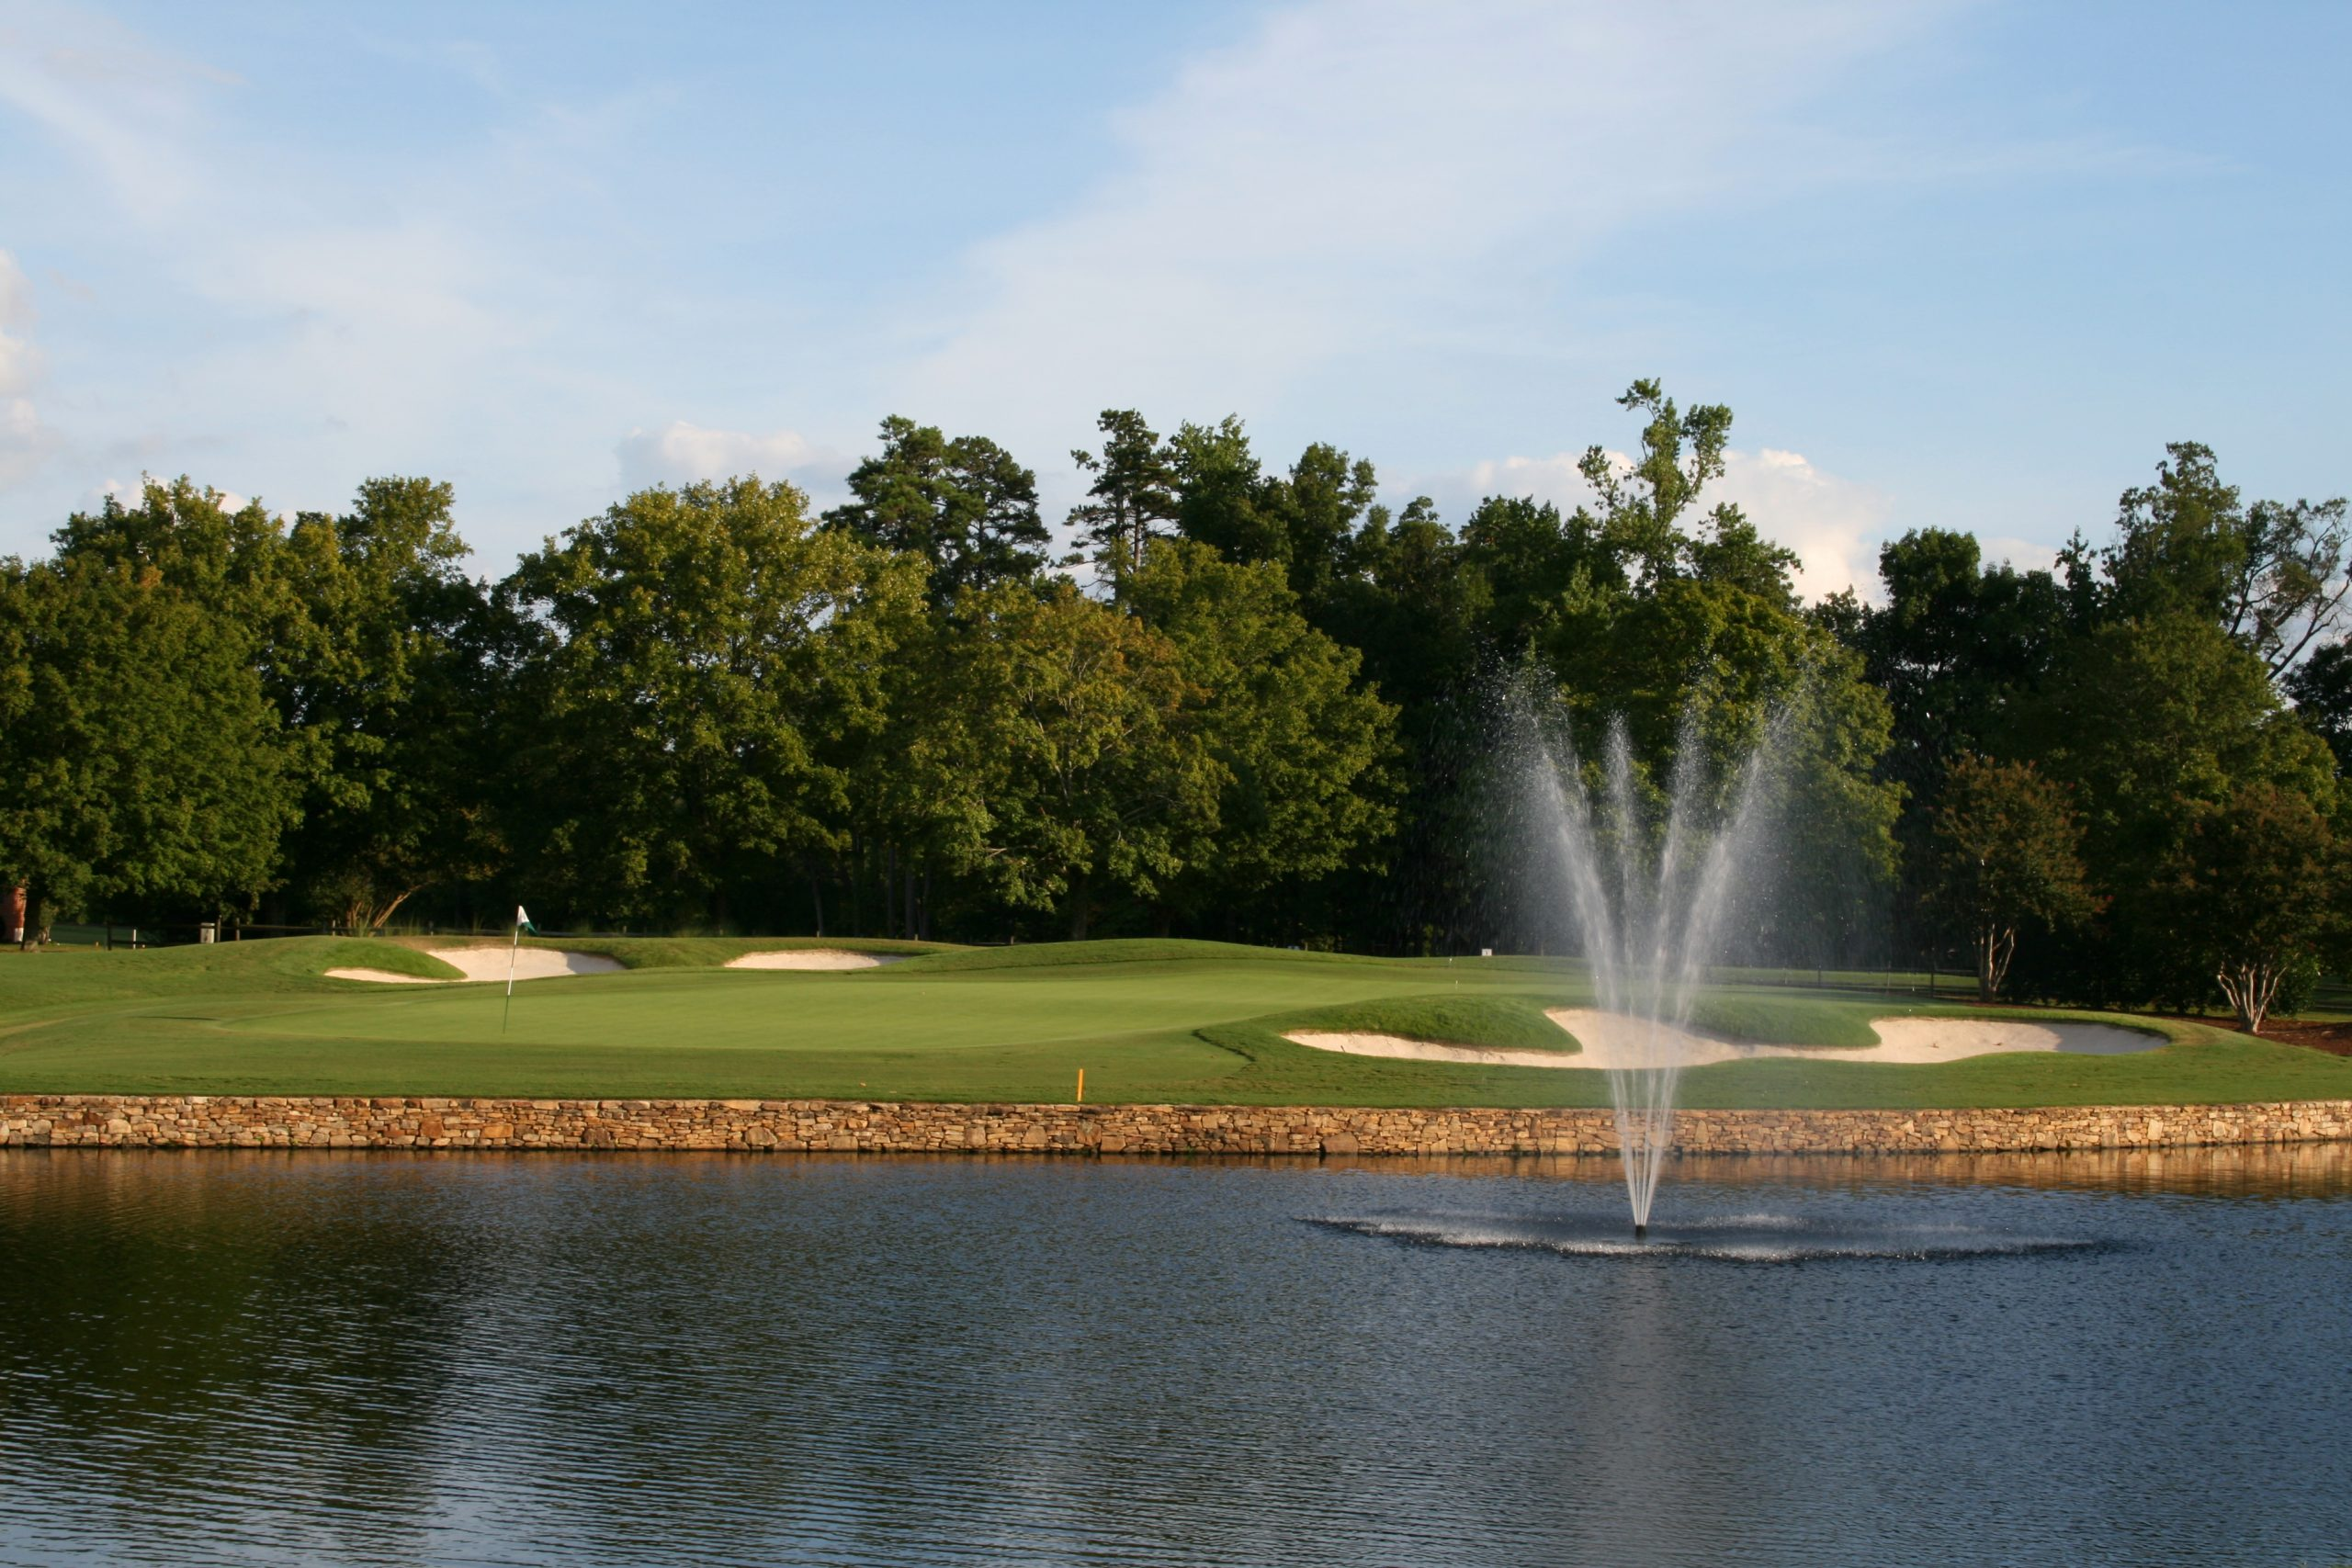 Golf green with sand bunkers, water hazard fountain and trees